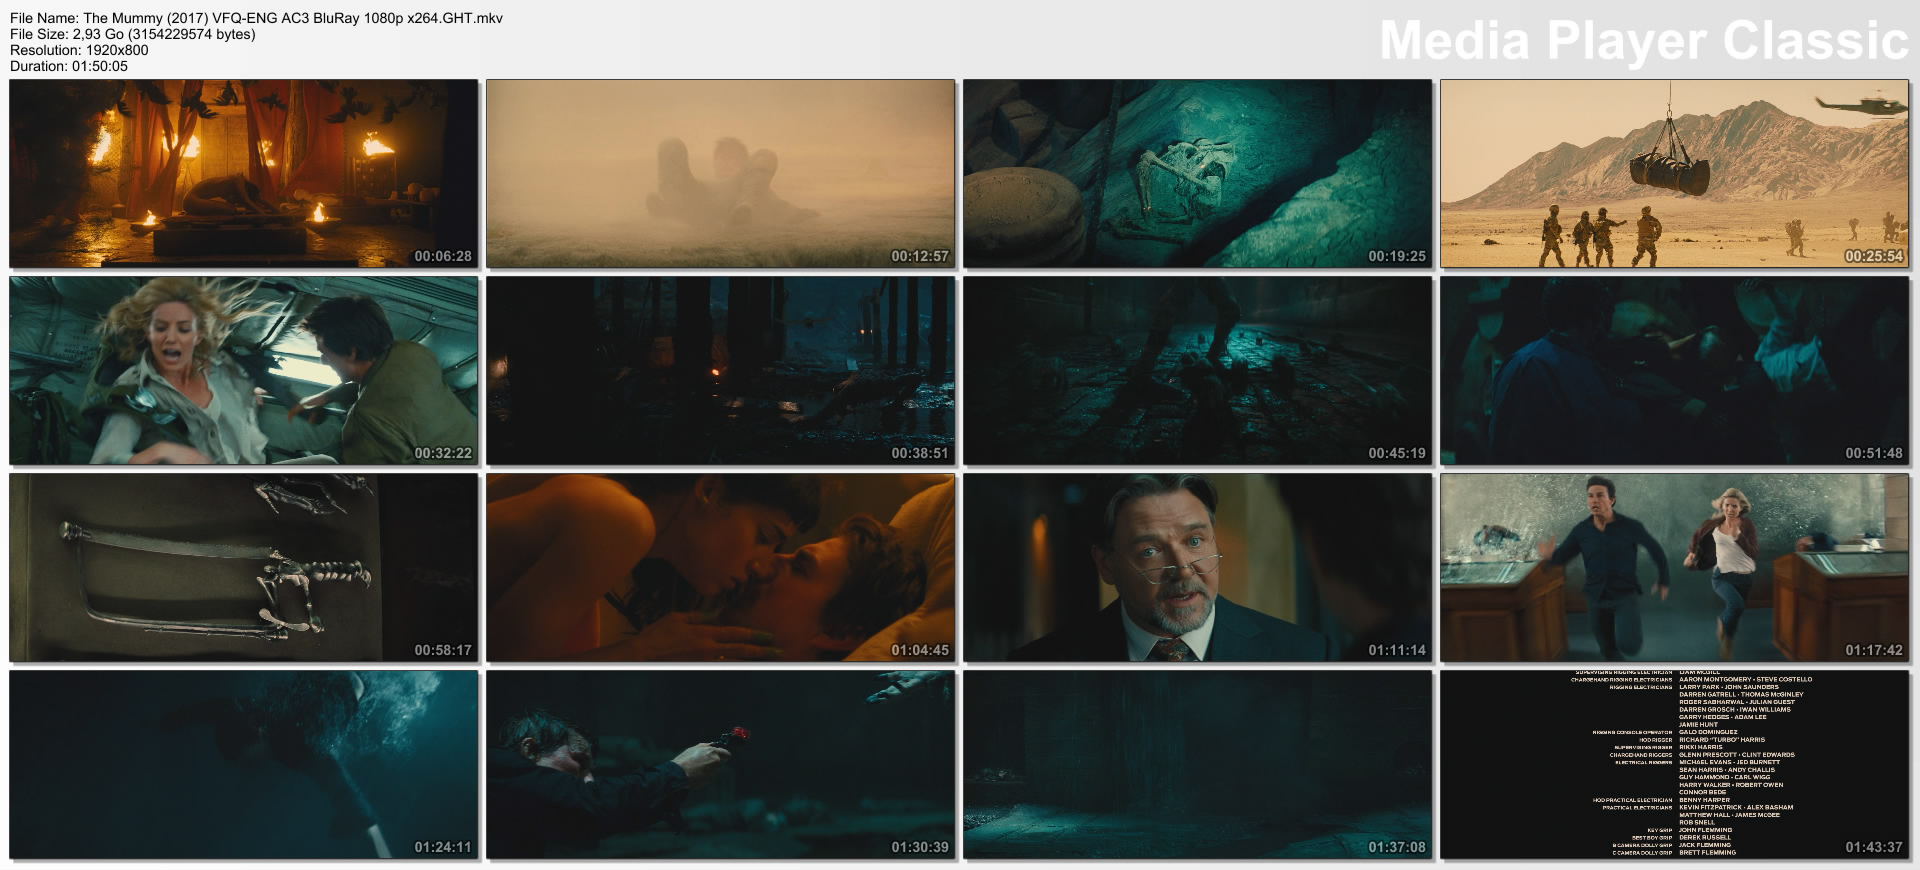 The Mummy (2017) VFQ-ENG AC3 BluRay 1080p x264.GHT